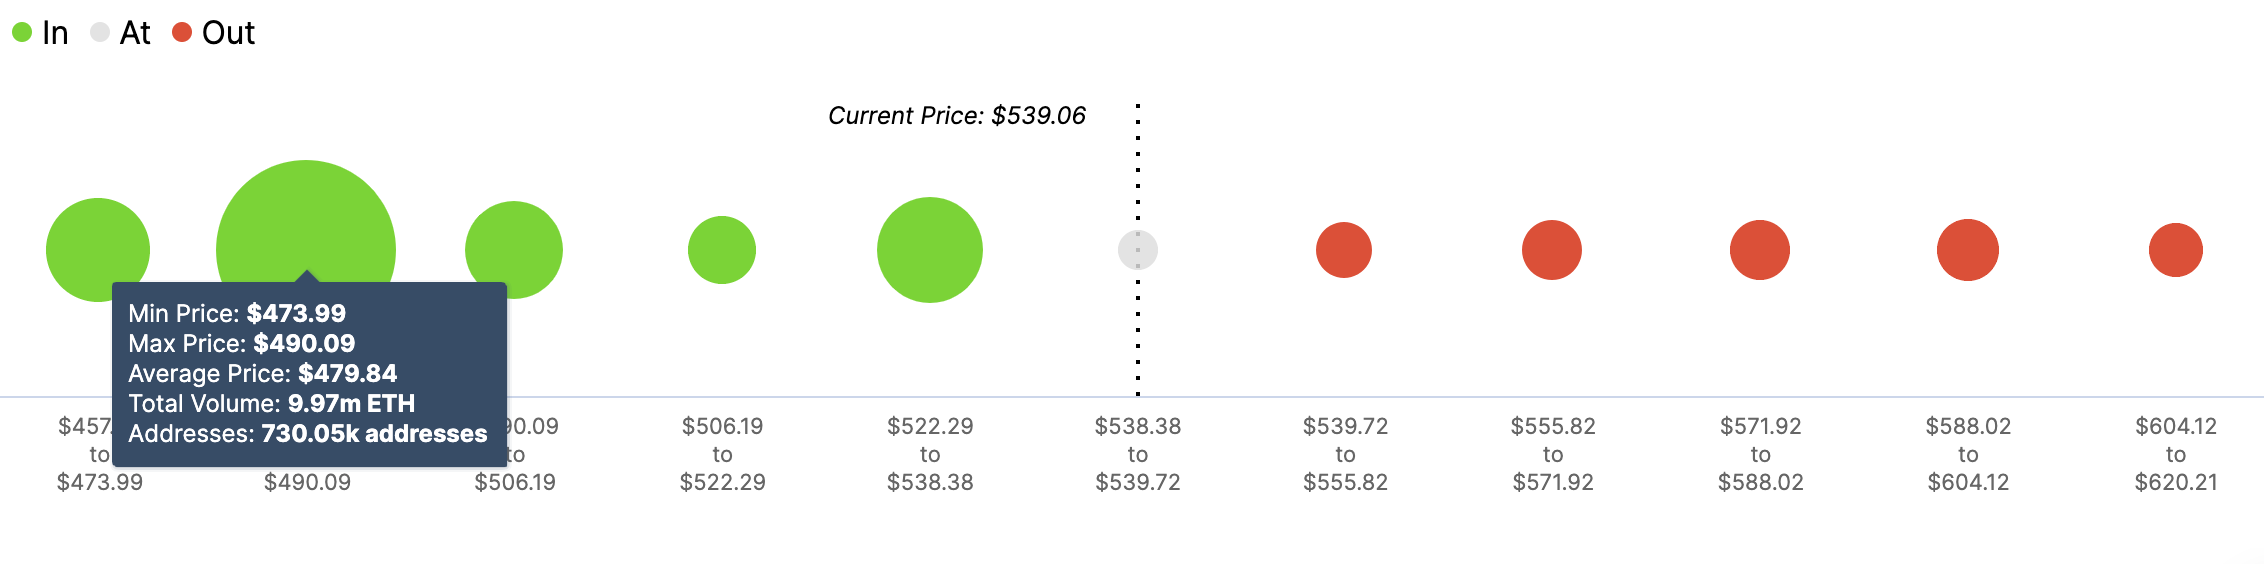 ETH In/Out of the Money Around Price